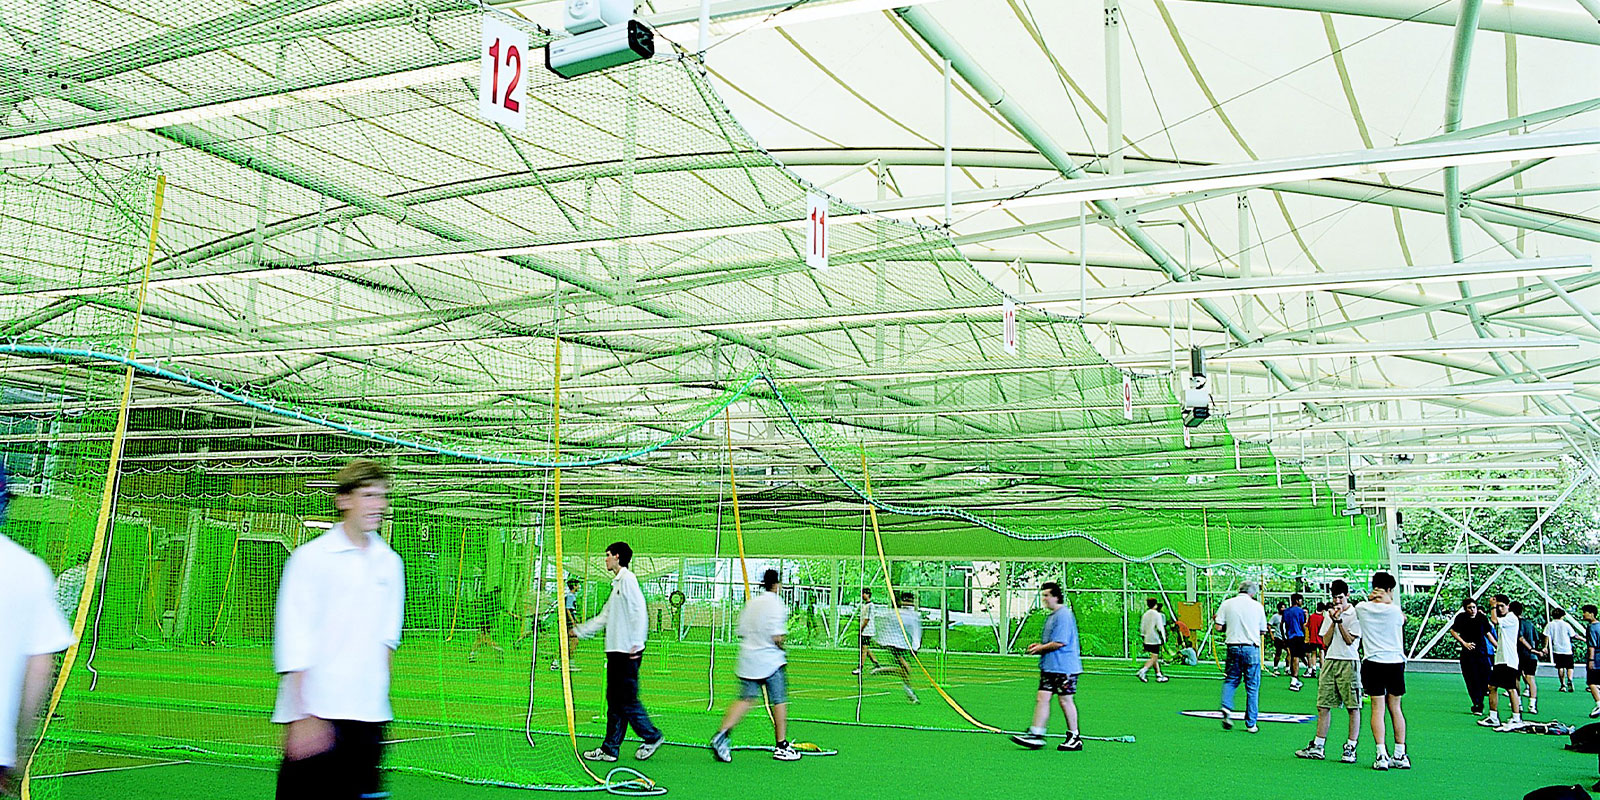 Sydney Cricket Ground Indoor Practice Wickets